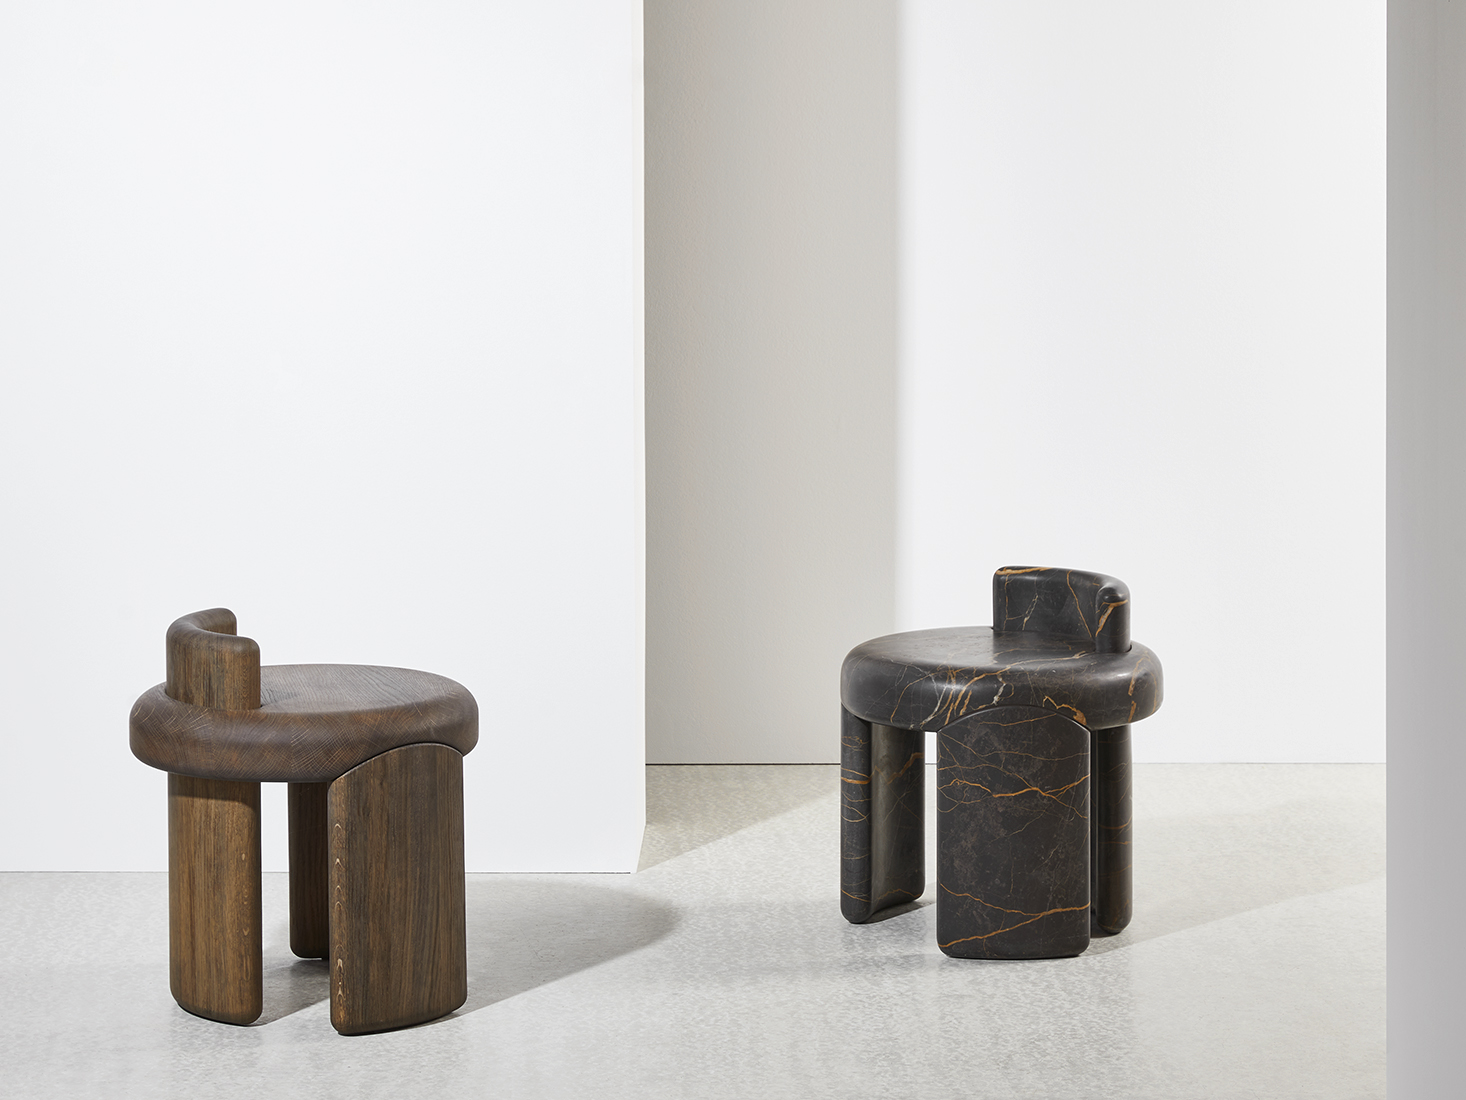 KAFA-STOOL-LUCA-ERBA-COLLECTION-PARTICULIERE